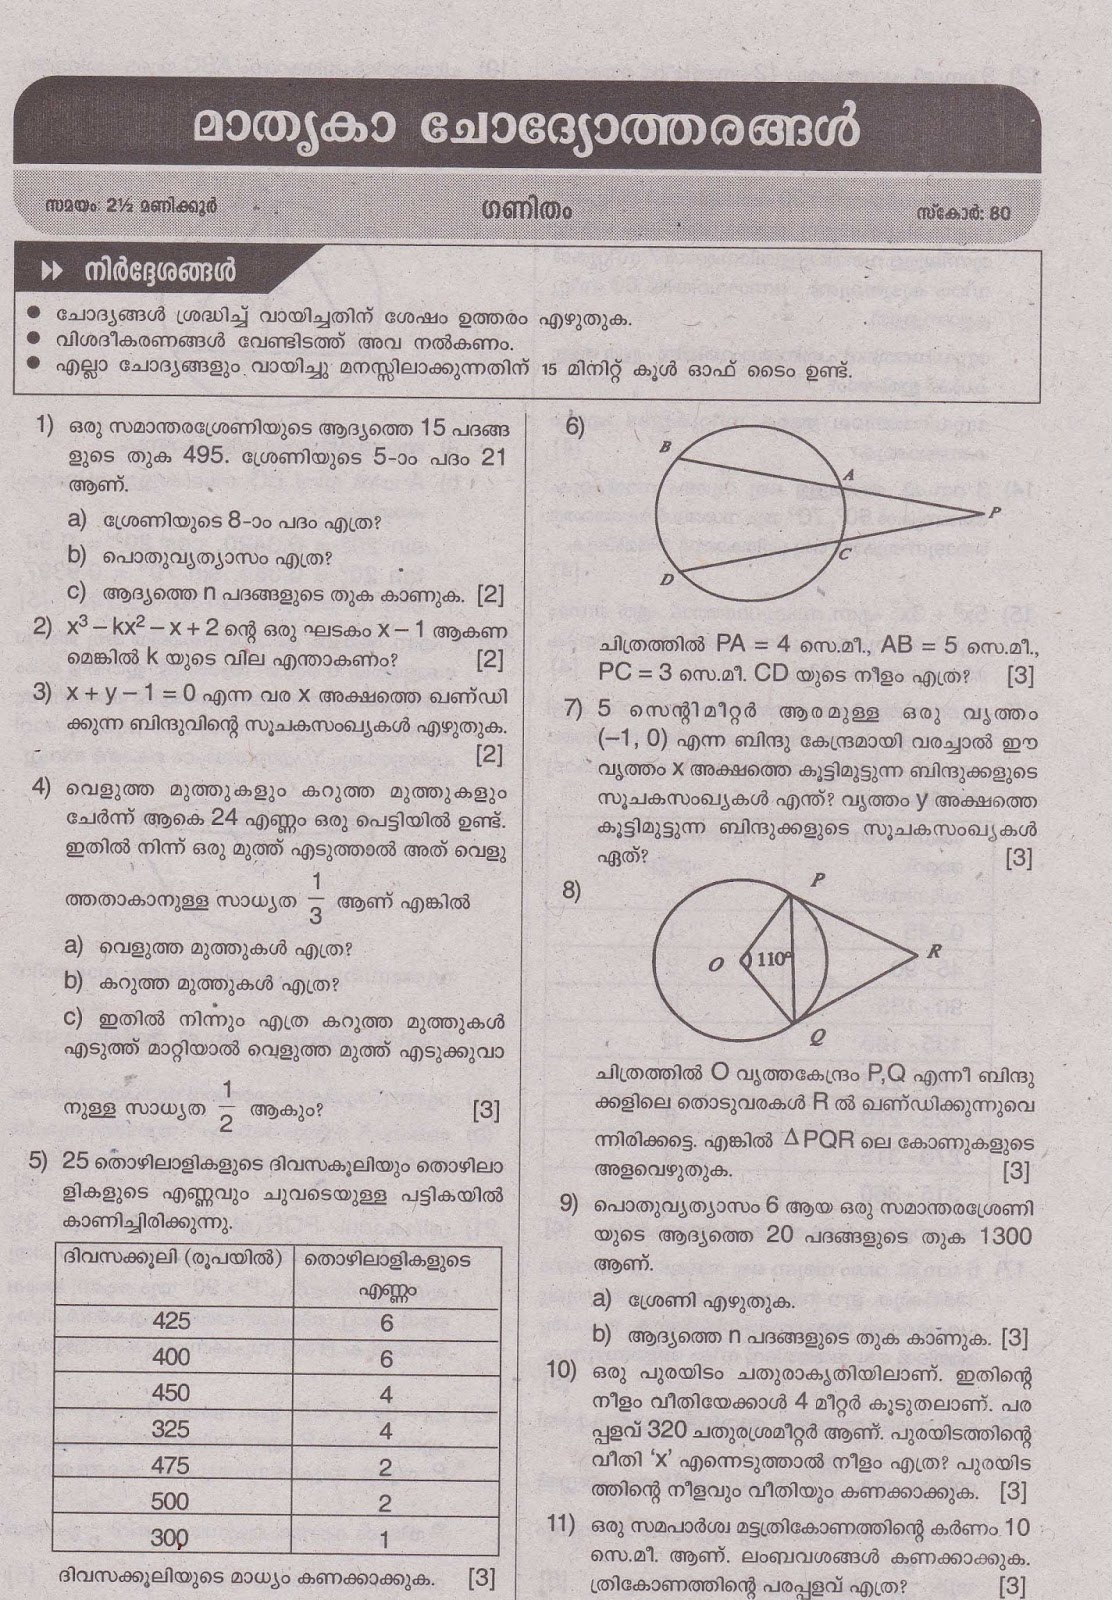 Sslc question paper sslc question paper mathematics sslc question paper maths malvernweather Choice Image